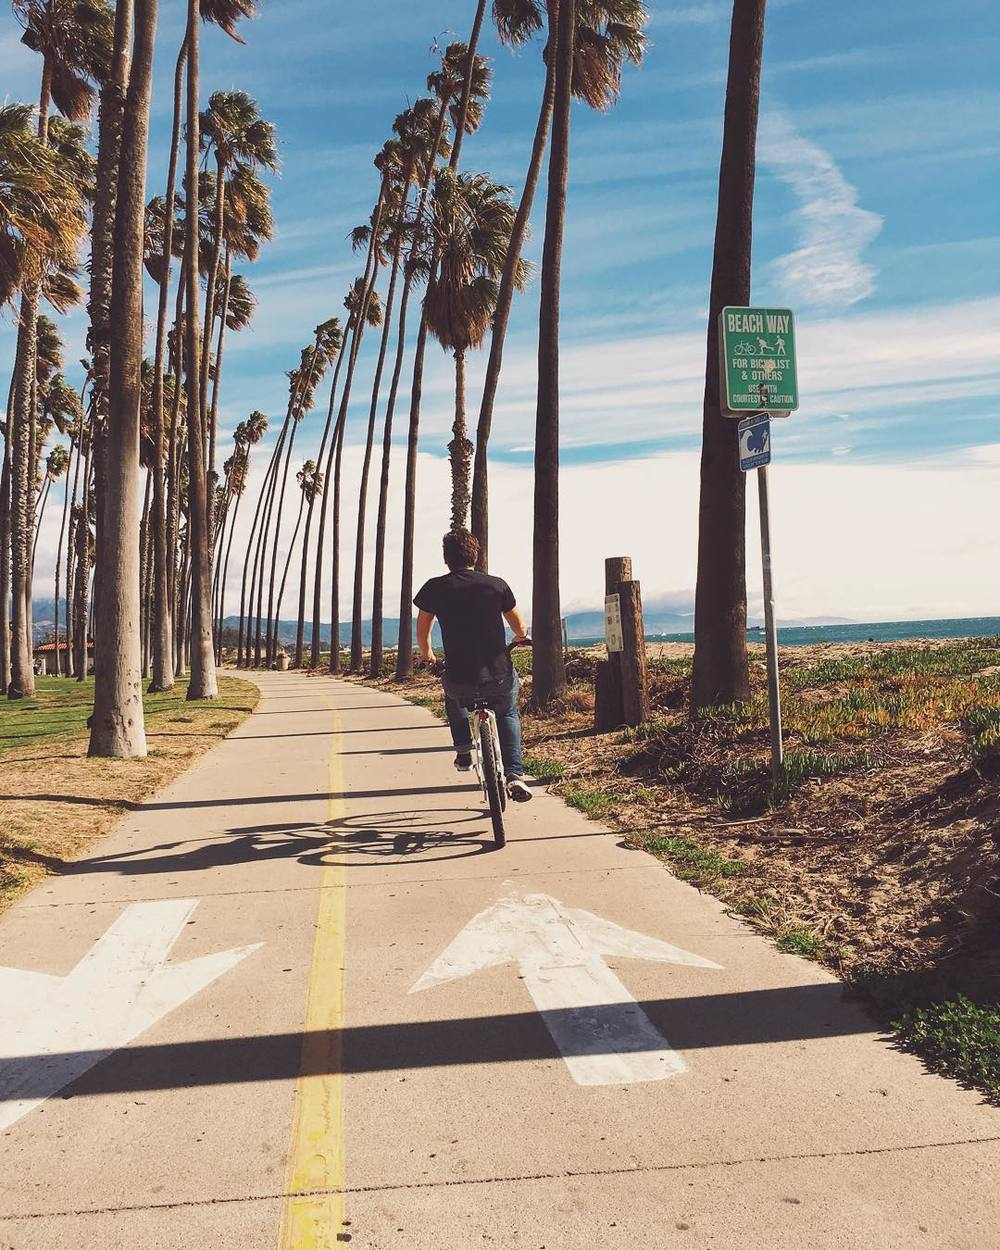 from-our-vacationer-days-biking-the-boardwalk-along-the-santabarbara-beach--on-the-way-to-the-zoo-dontkickjimmy-travel-wanderlust-letsgo-352365_23905855231_o.jpg